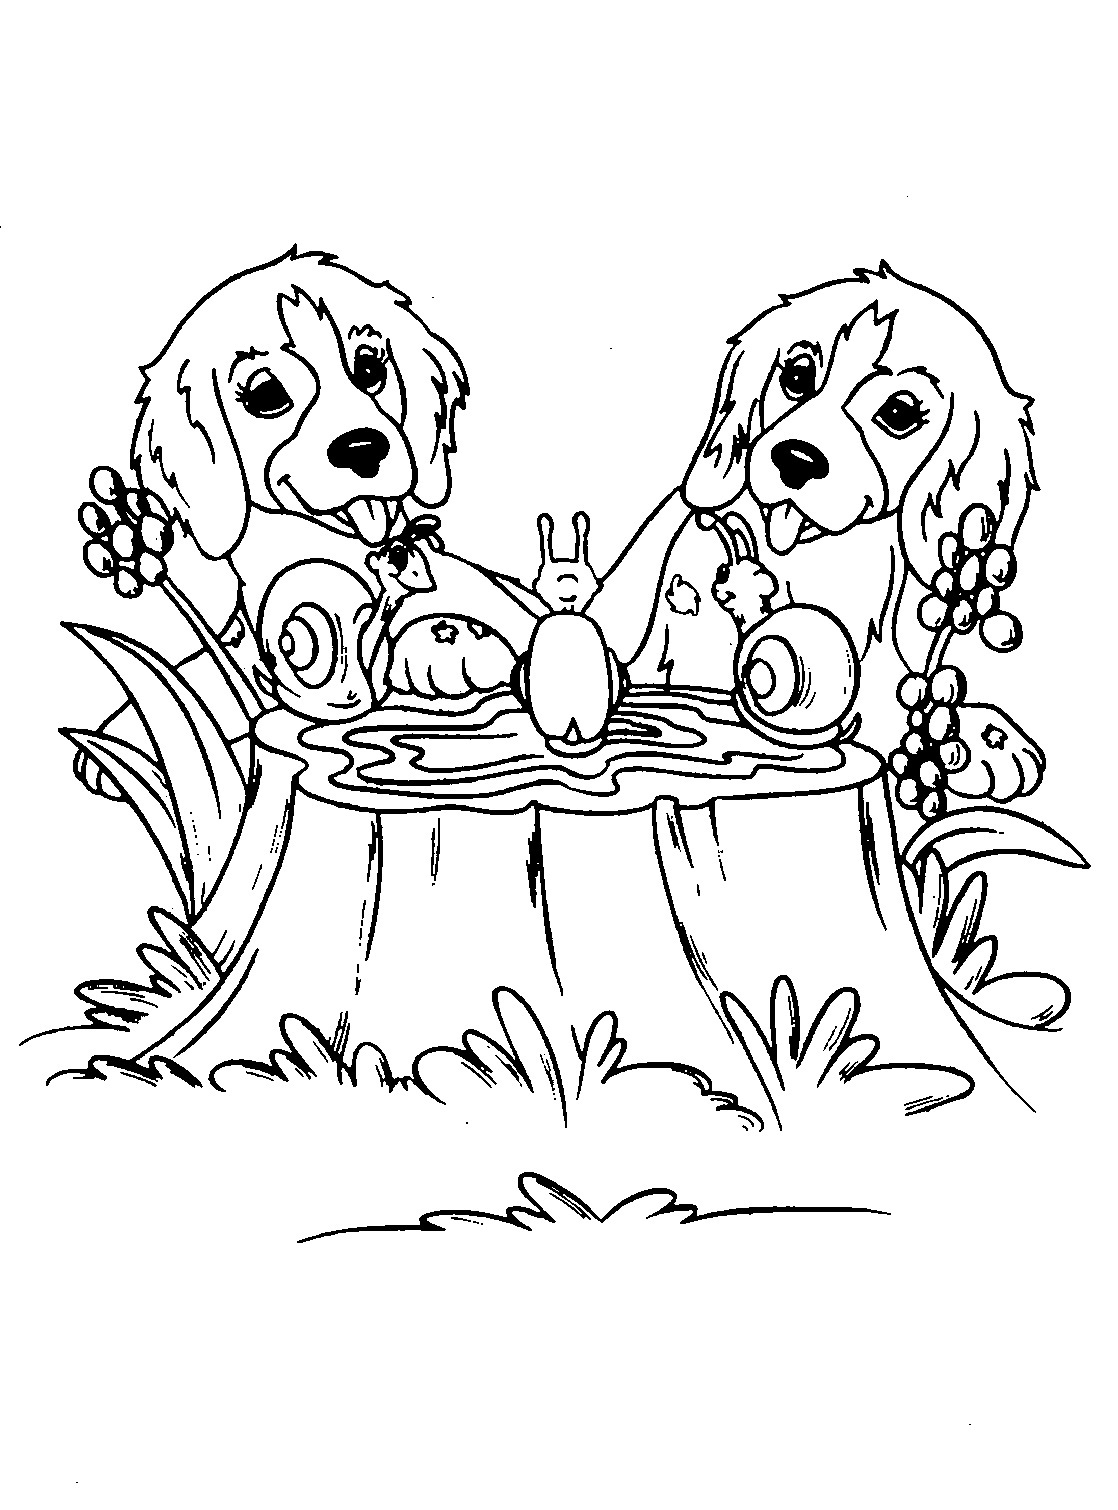 children s coloring pages - photo#12